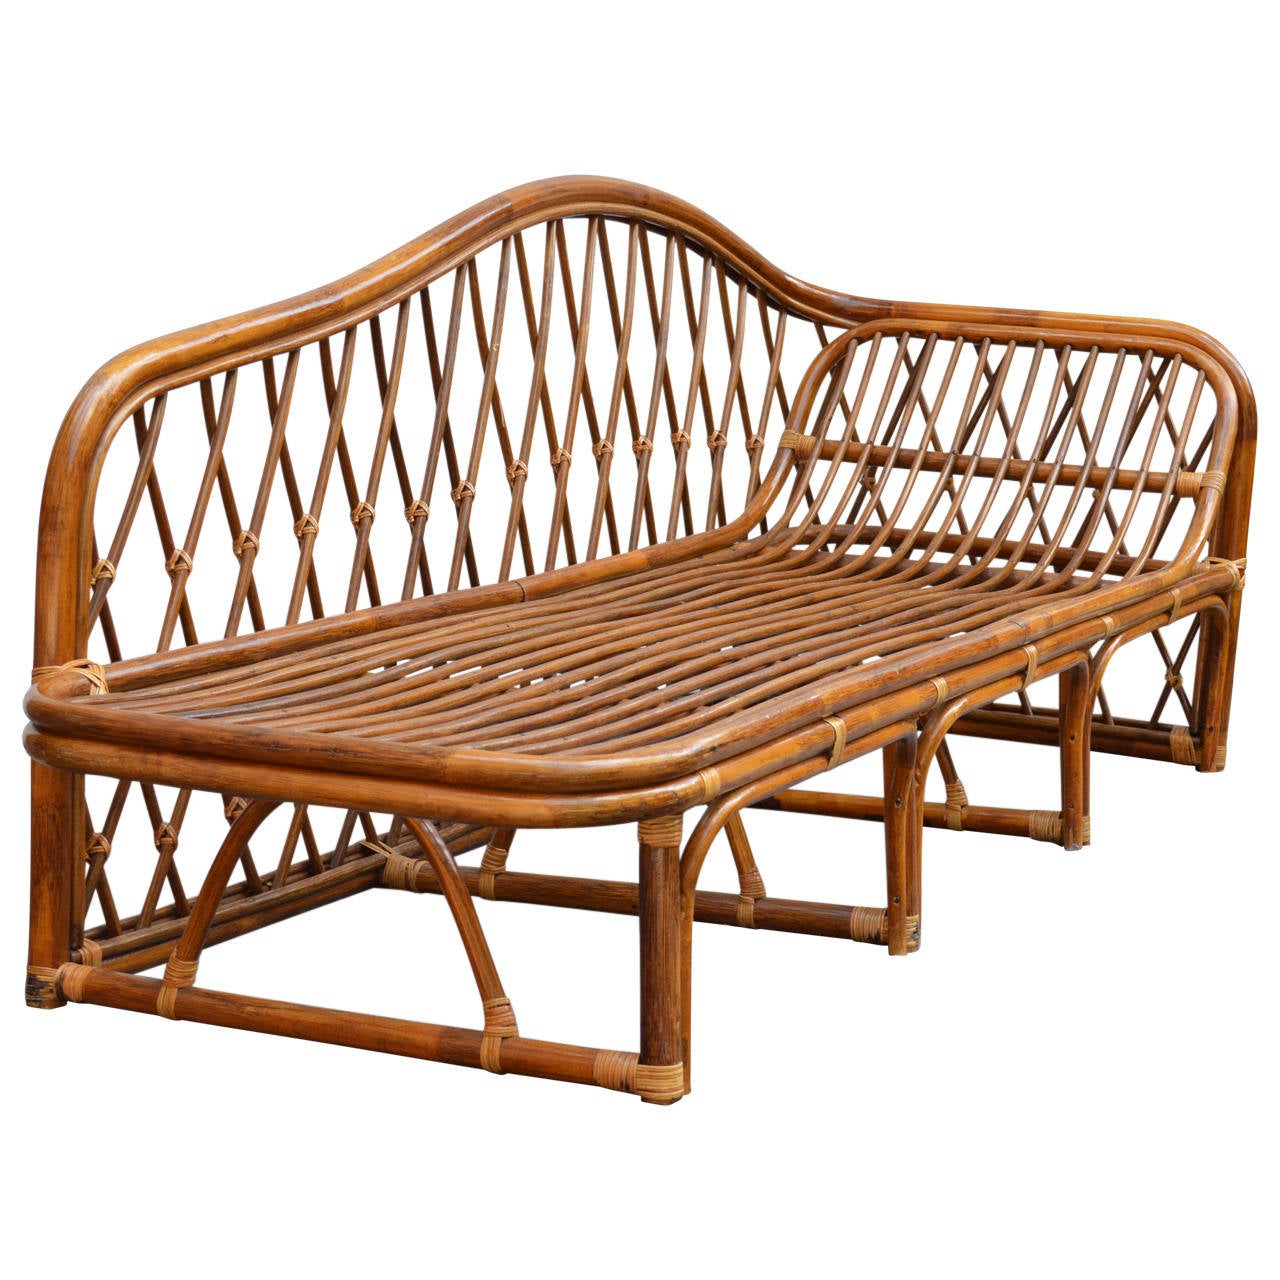 Vintage rattan chaise lounge at 1stdibs for Antique chaise lounge prices